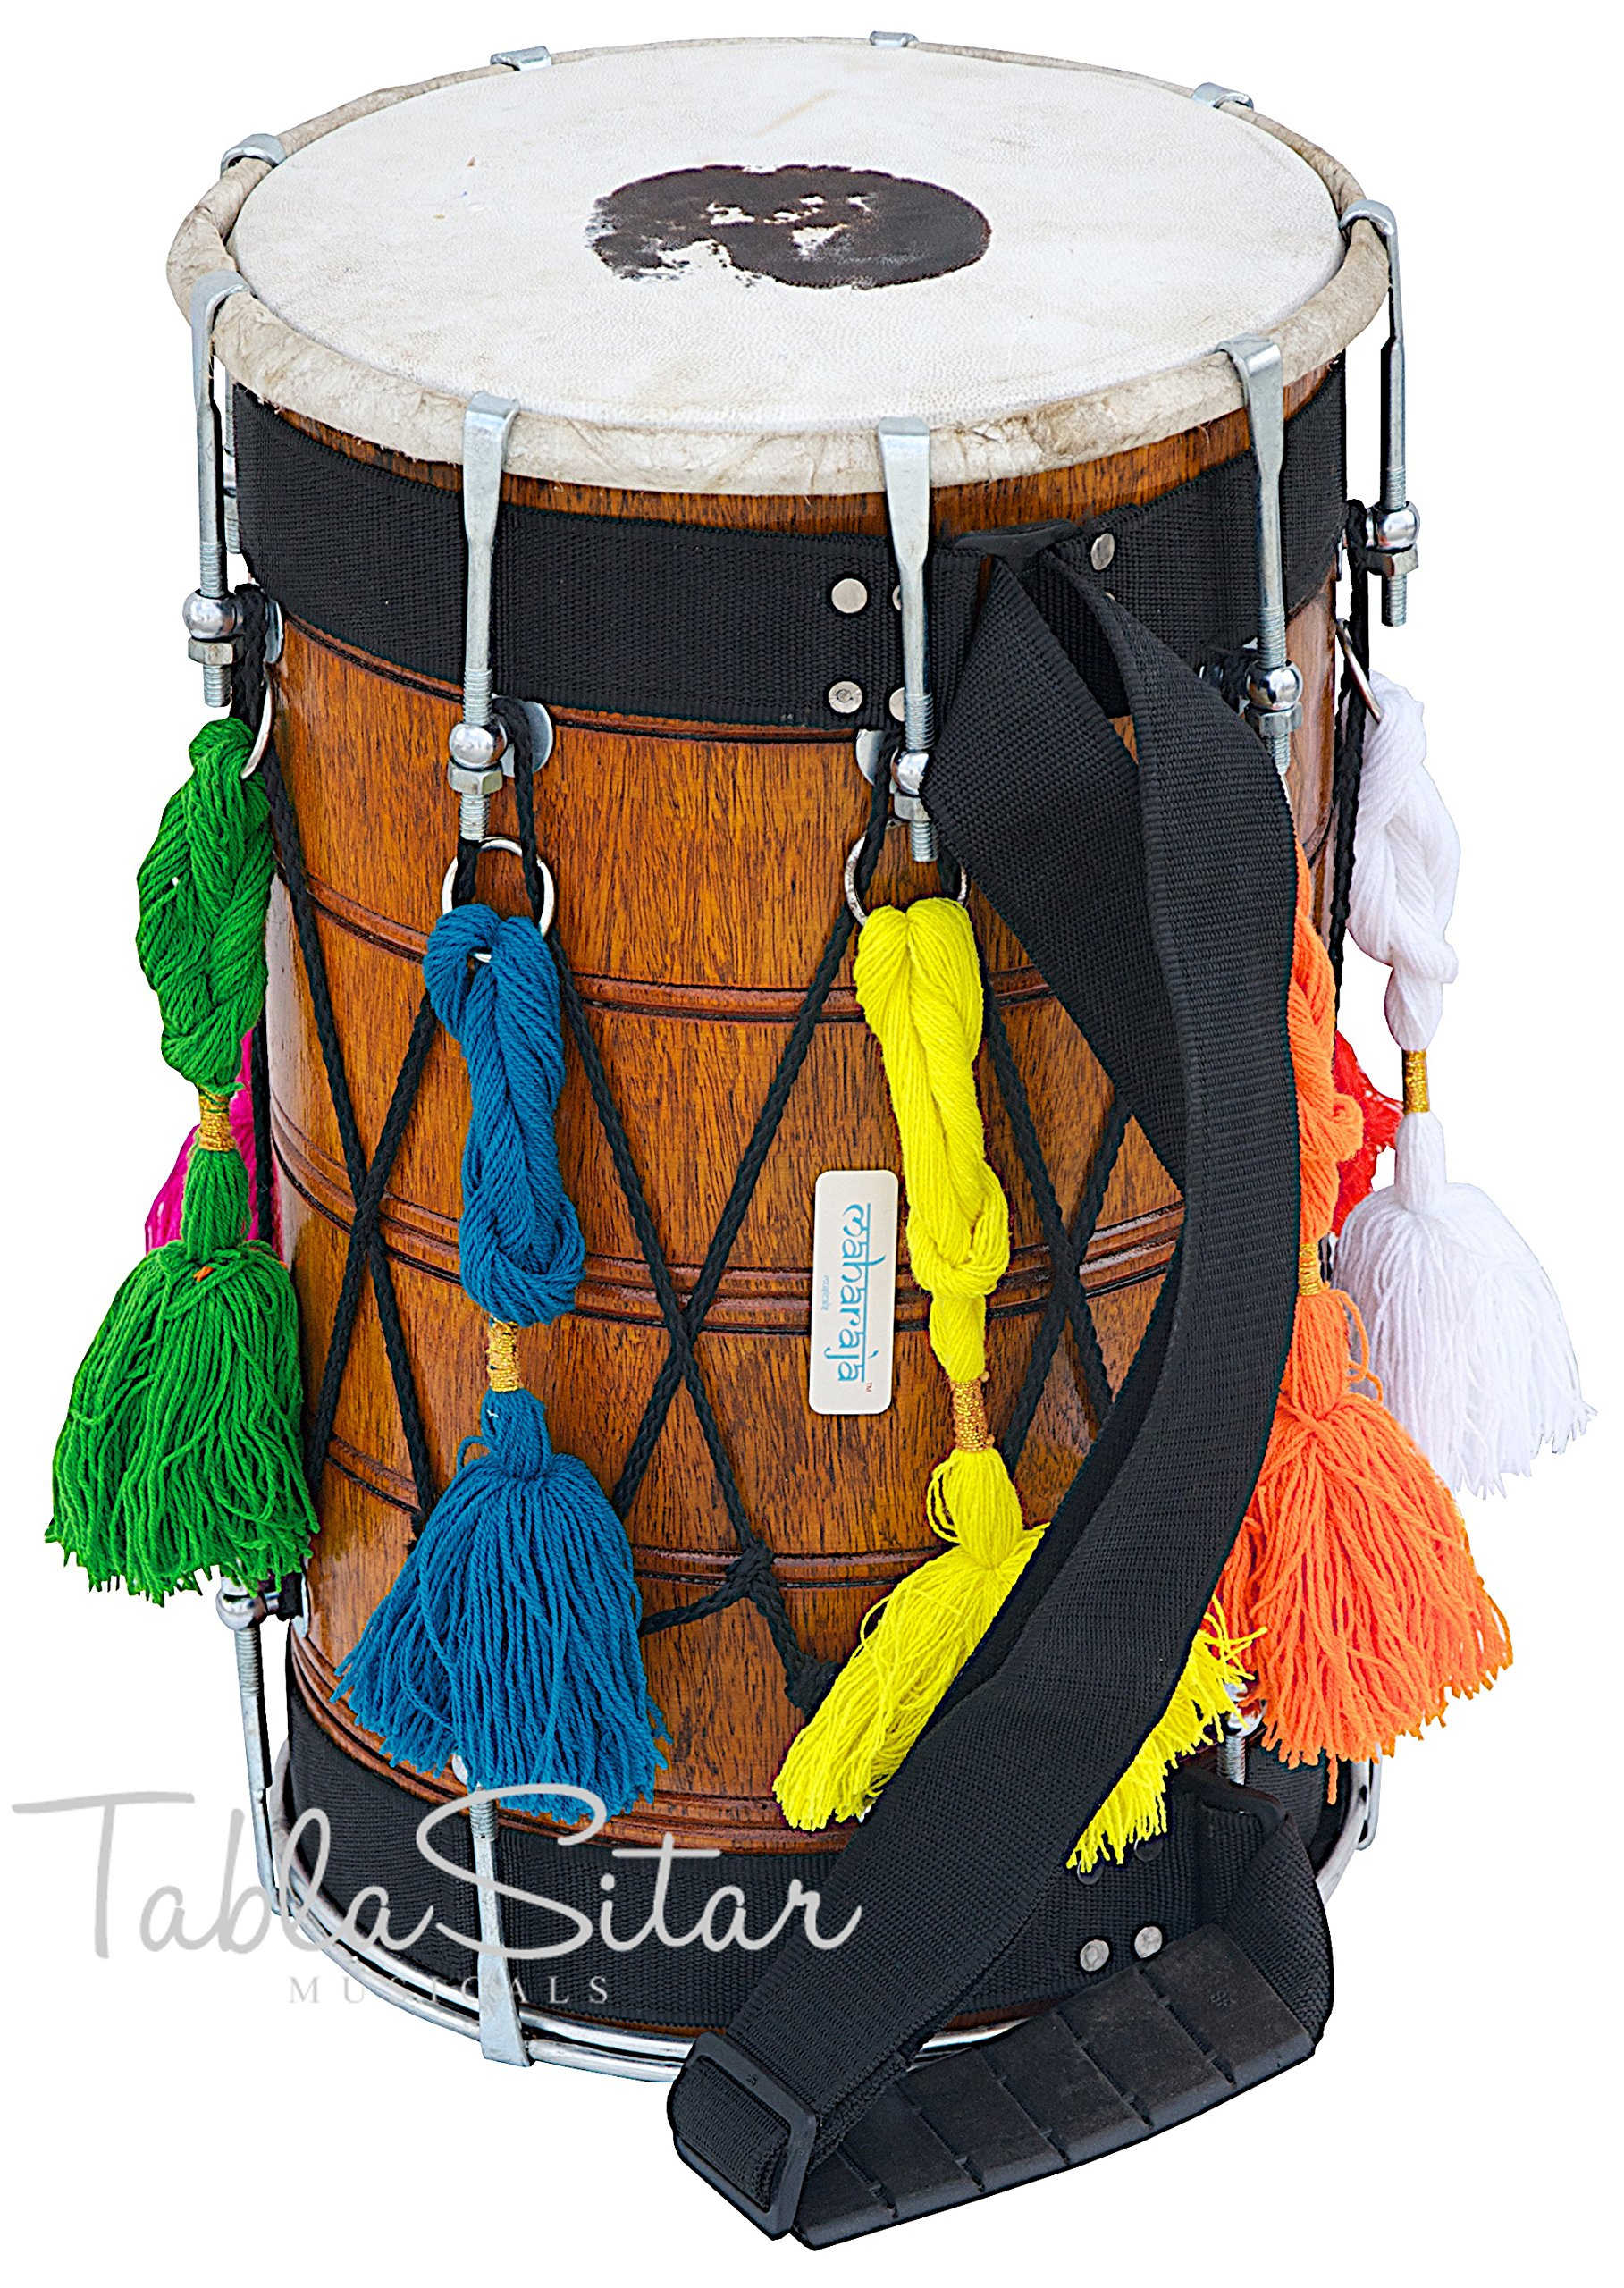 MAHARAJA Junior Dhol - Natural Color - Mango Wood Dhol for Kids (PDI-BGD) by Maharaja Musicals